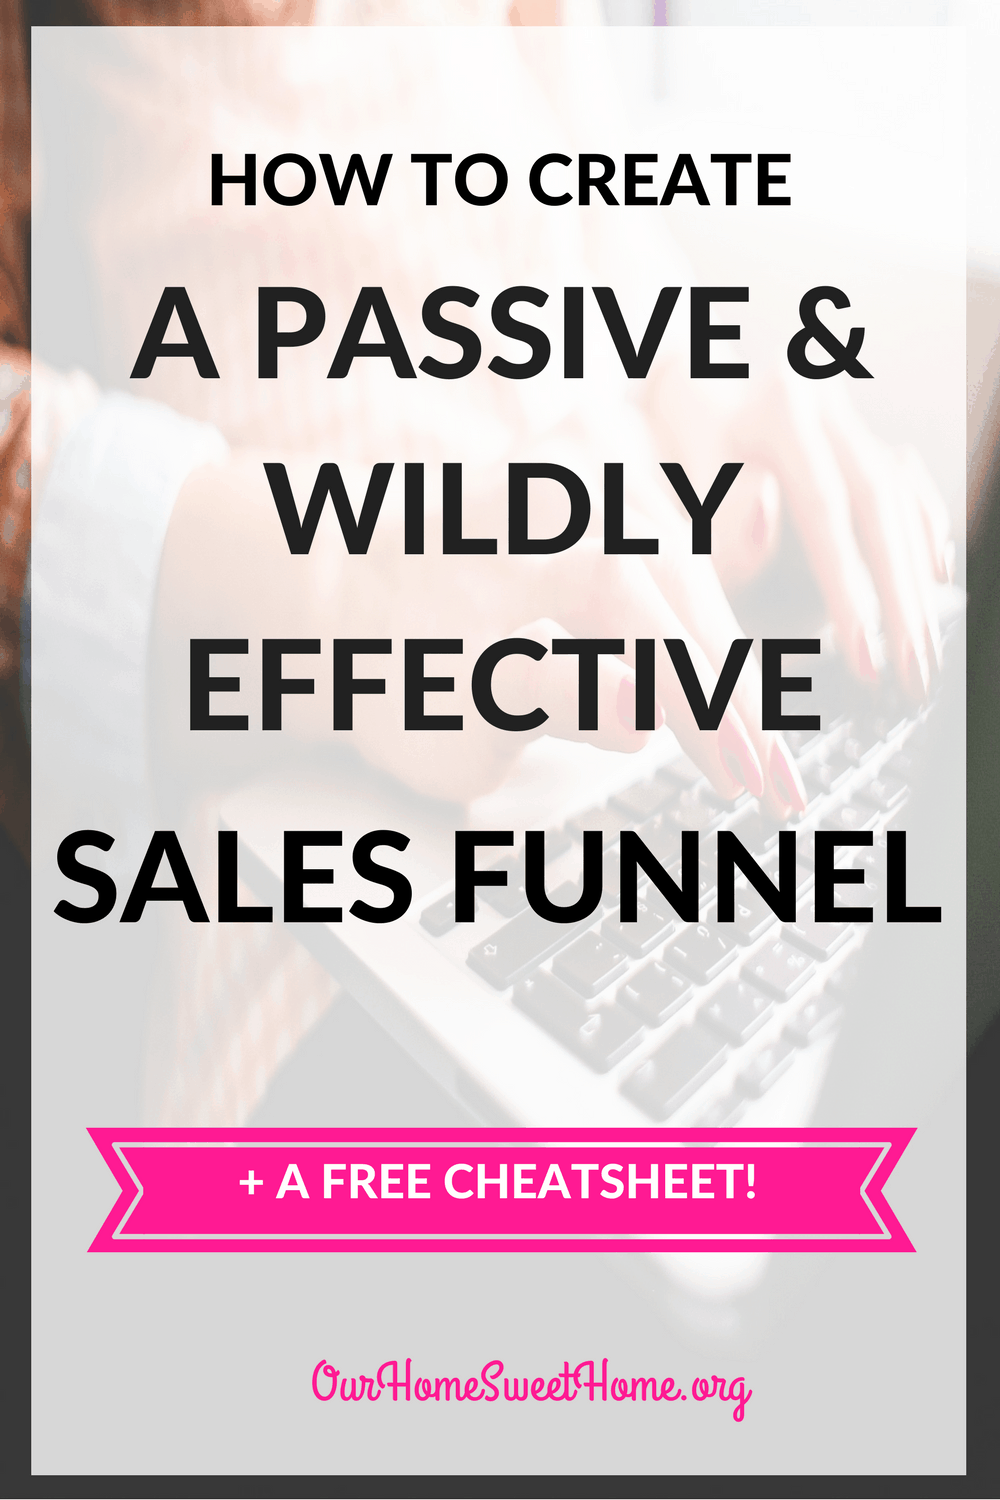 How To Create a Passive and Wildly Effective Sales Funnel